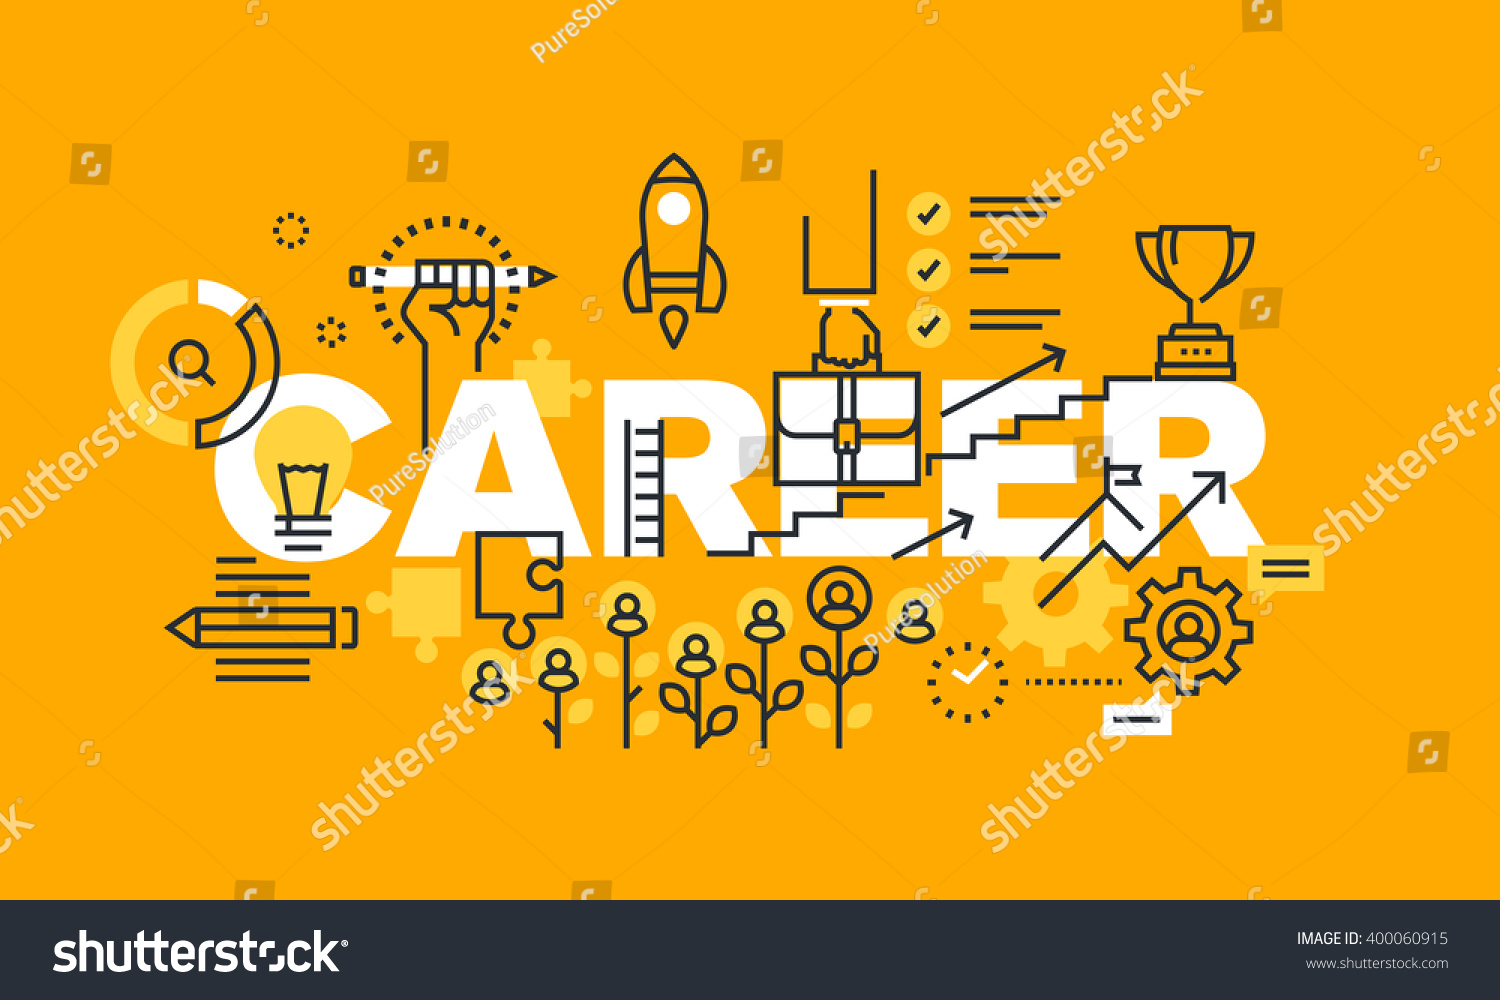 thin line flat design banner career stock vector  thin line flat design banner for career web page employment career development job